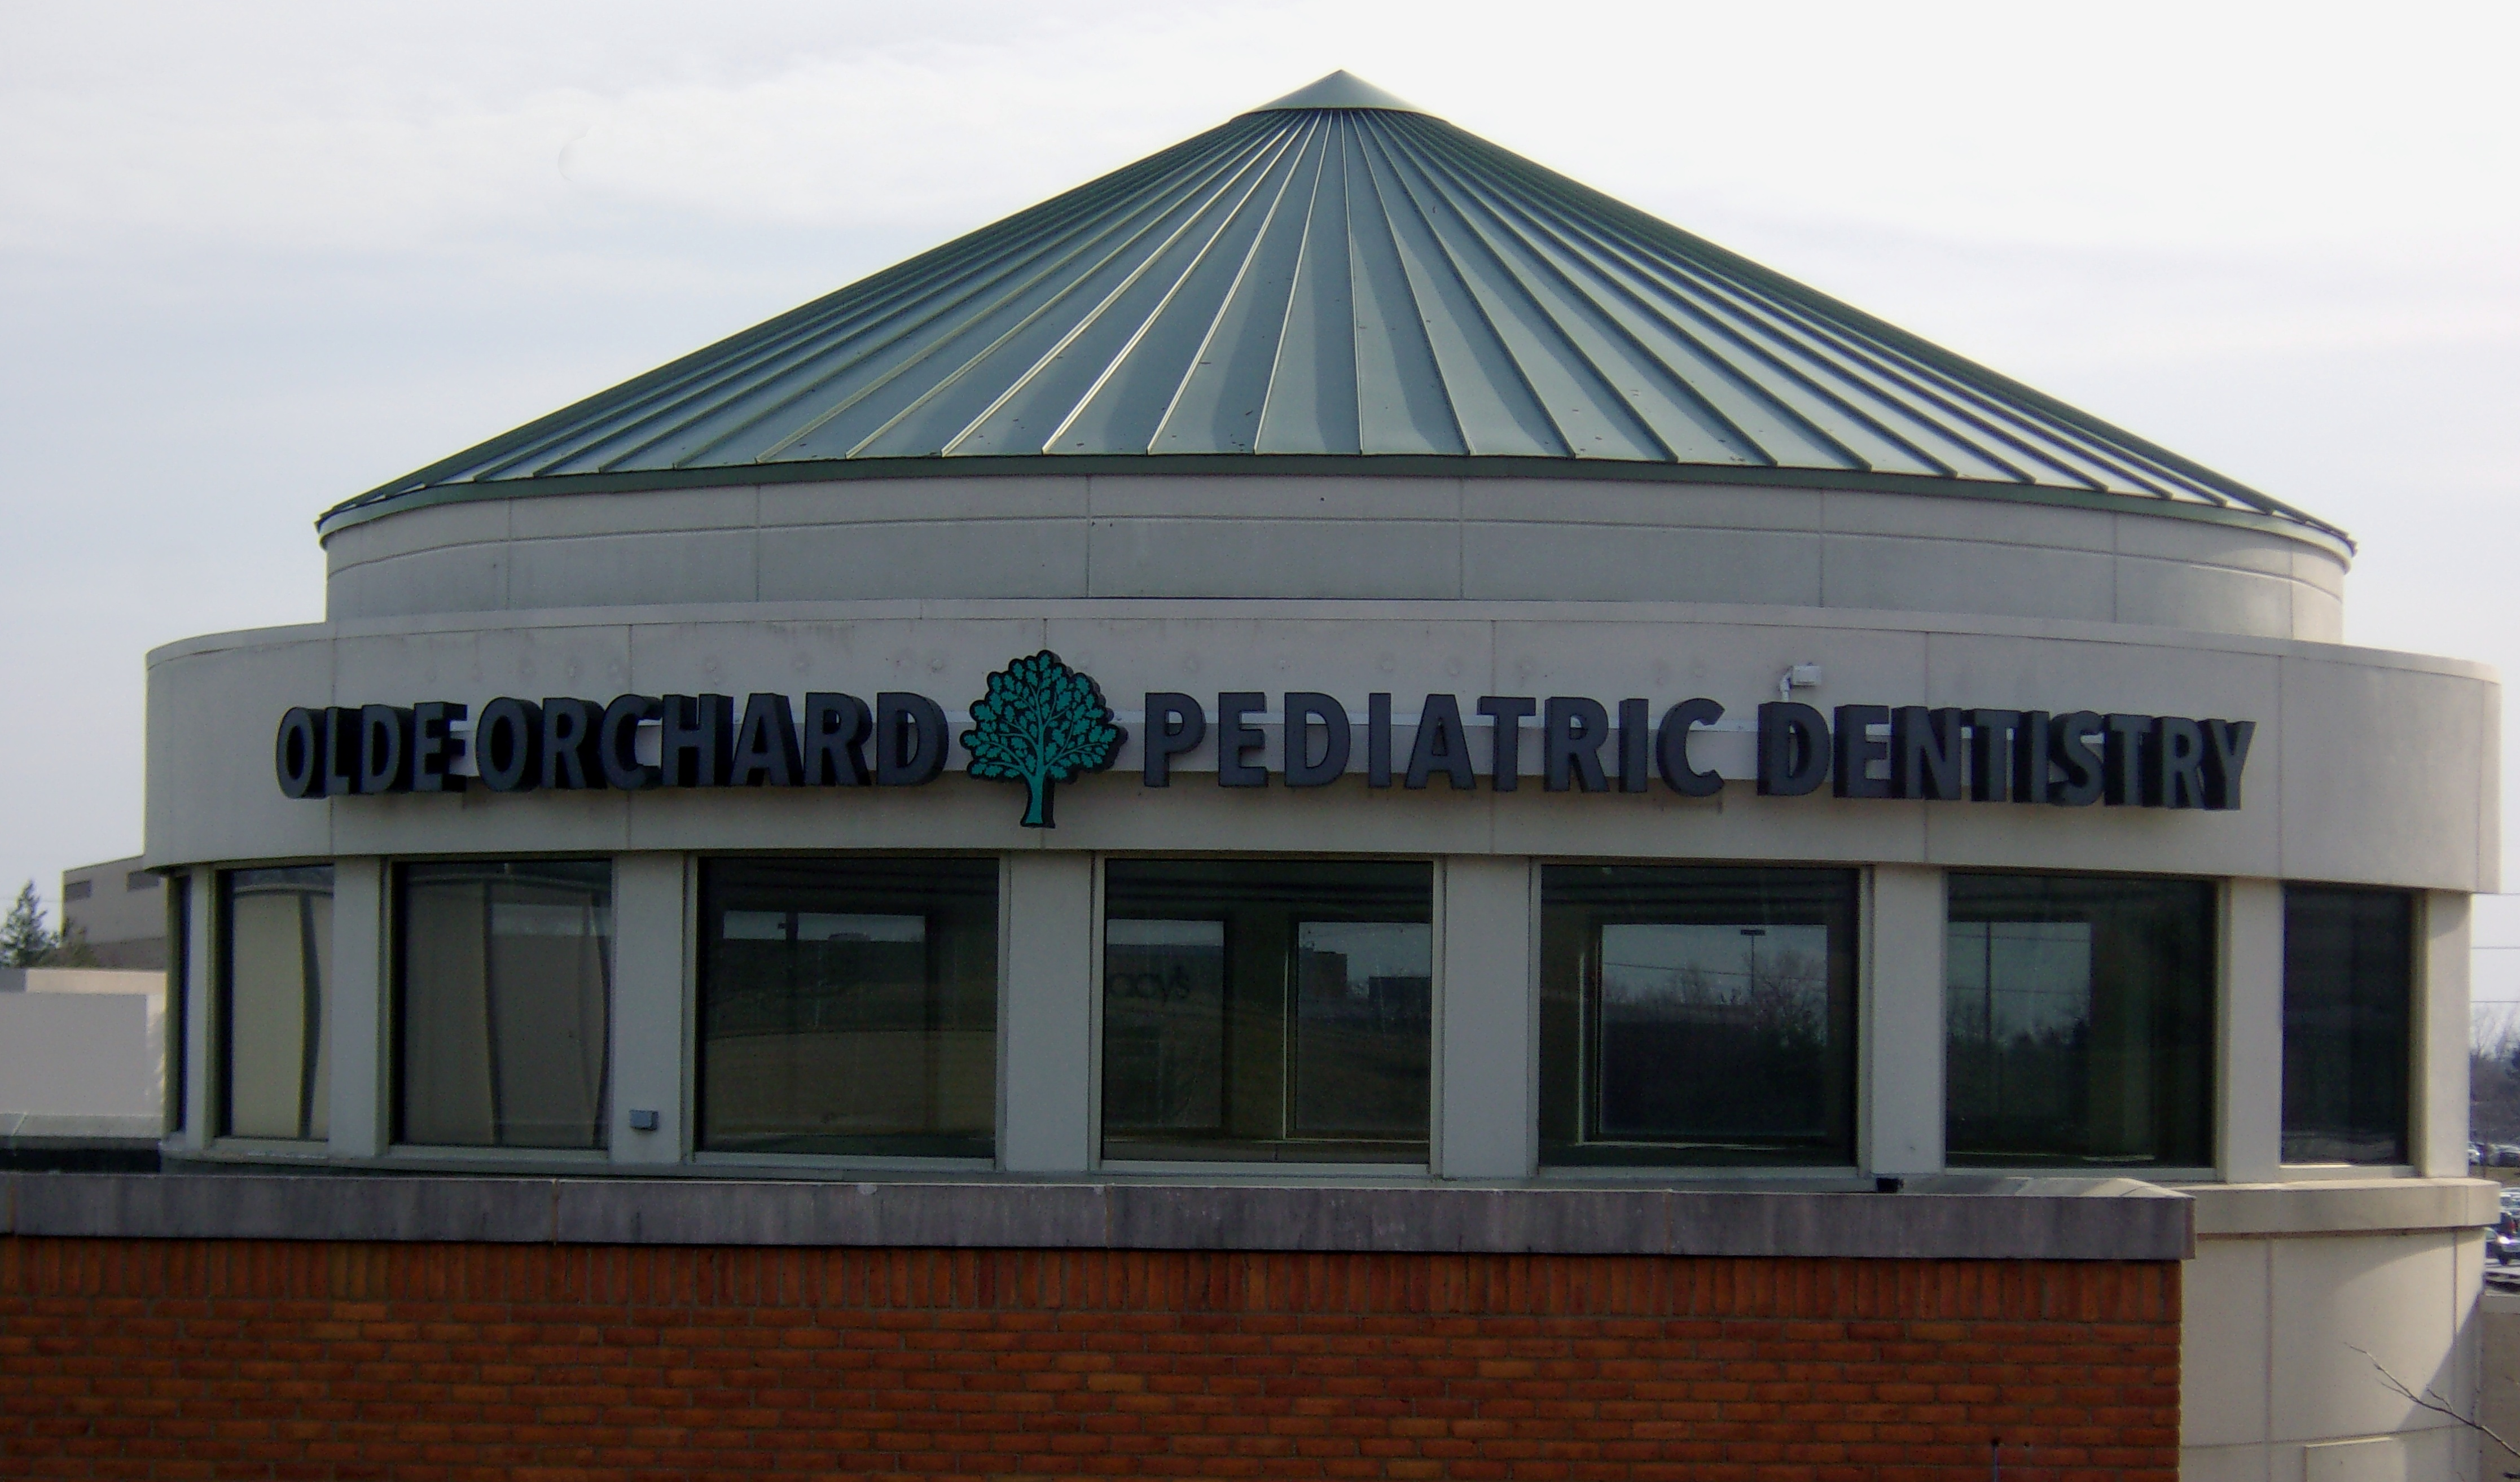 Olde Orchard Pediatric Dentistry